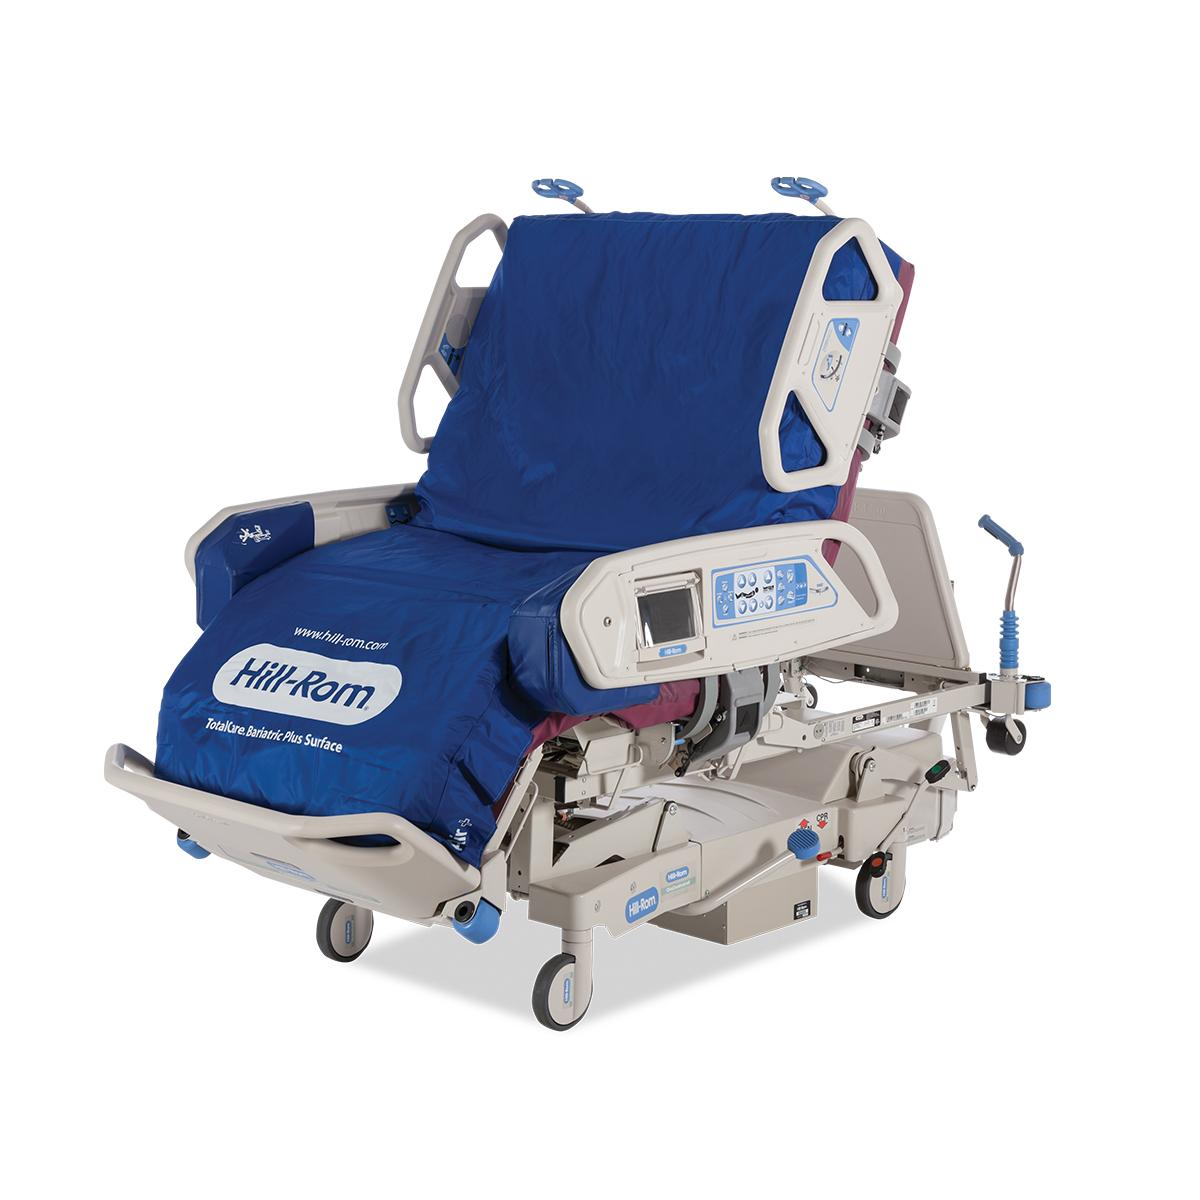 TotalCare Bariatric Plus Hospital Bed, 3/4 view, in chair position with side rails up